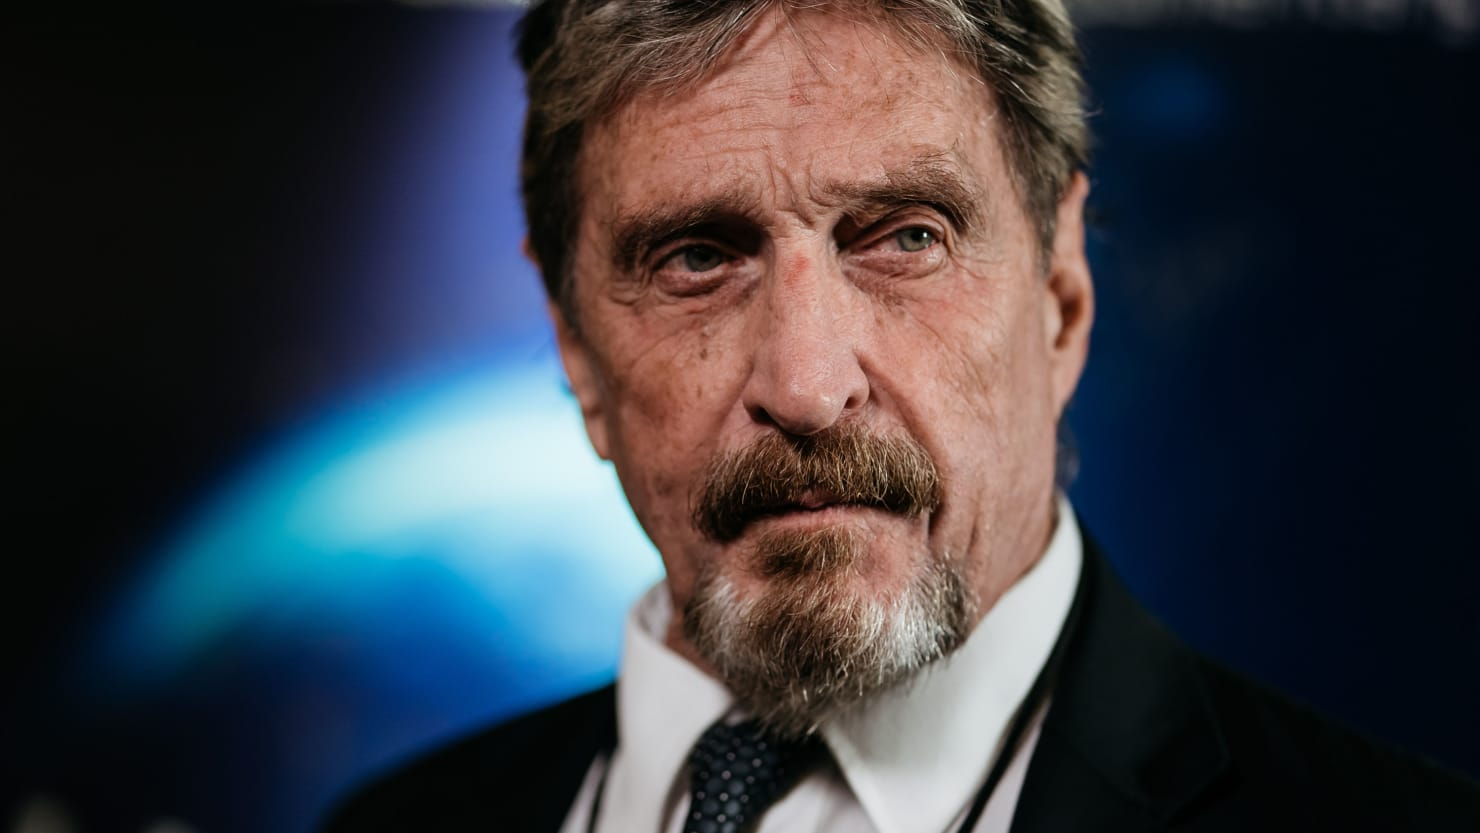 Eccentric Antivirus Multi-millionaire John McAfee Accused of Making Millions in Illegal Crypto Schemes